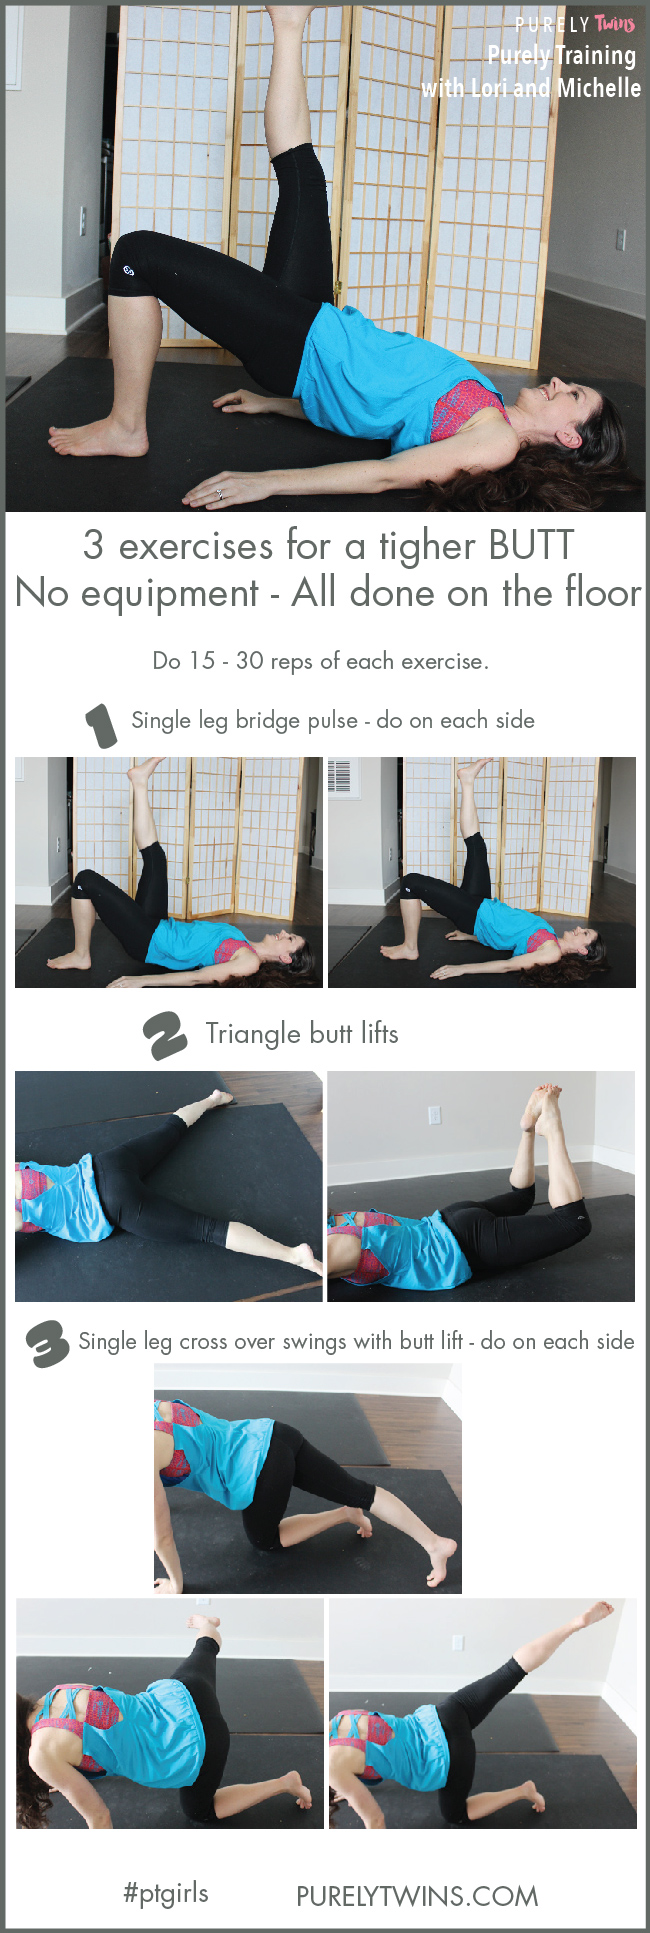 Hey ladies!! Get ready to firm up that butt. 3 moves for a tighter booty. No equipment needed. You can do them all on the floor. A great workout to do anywhere and anytime.